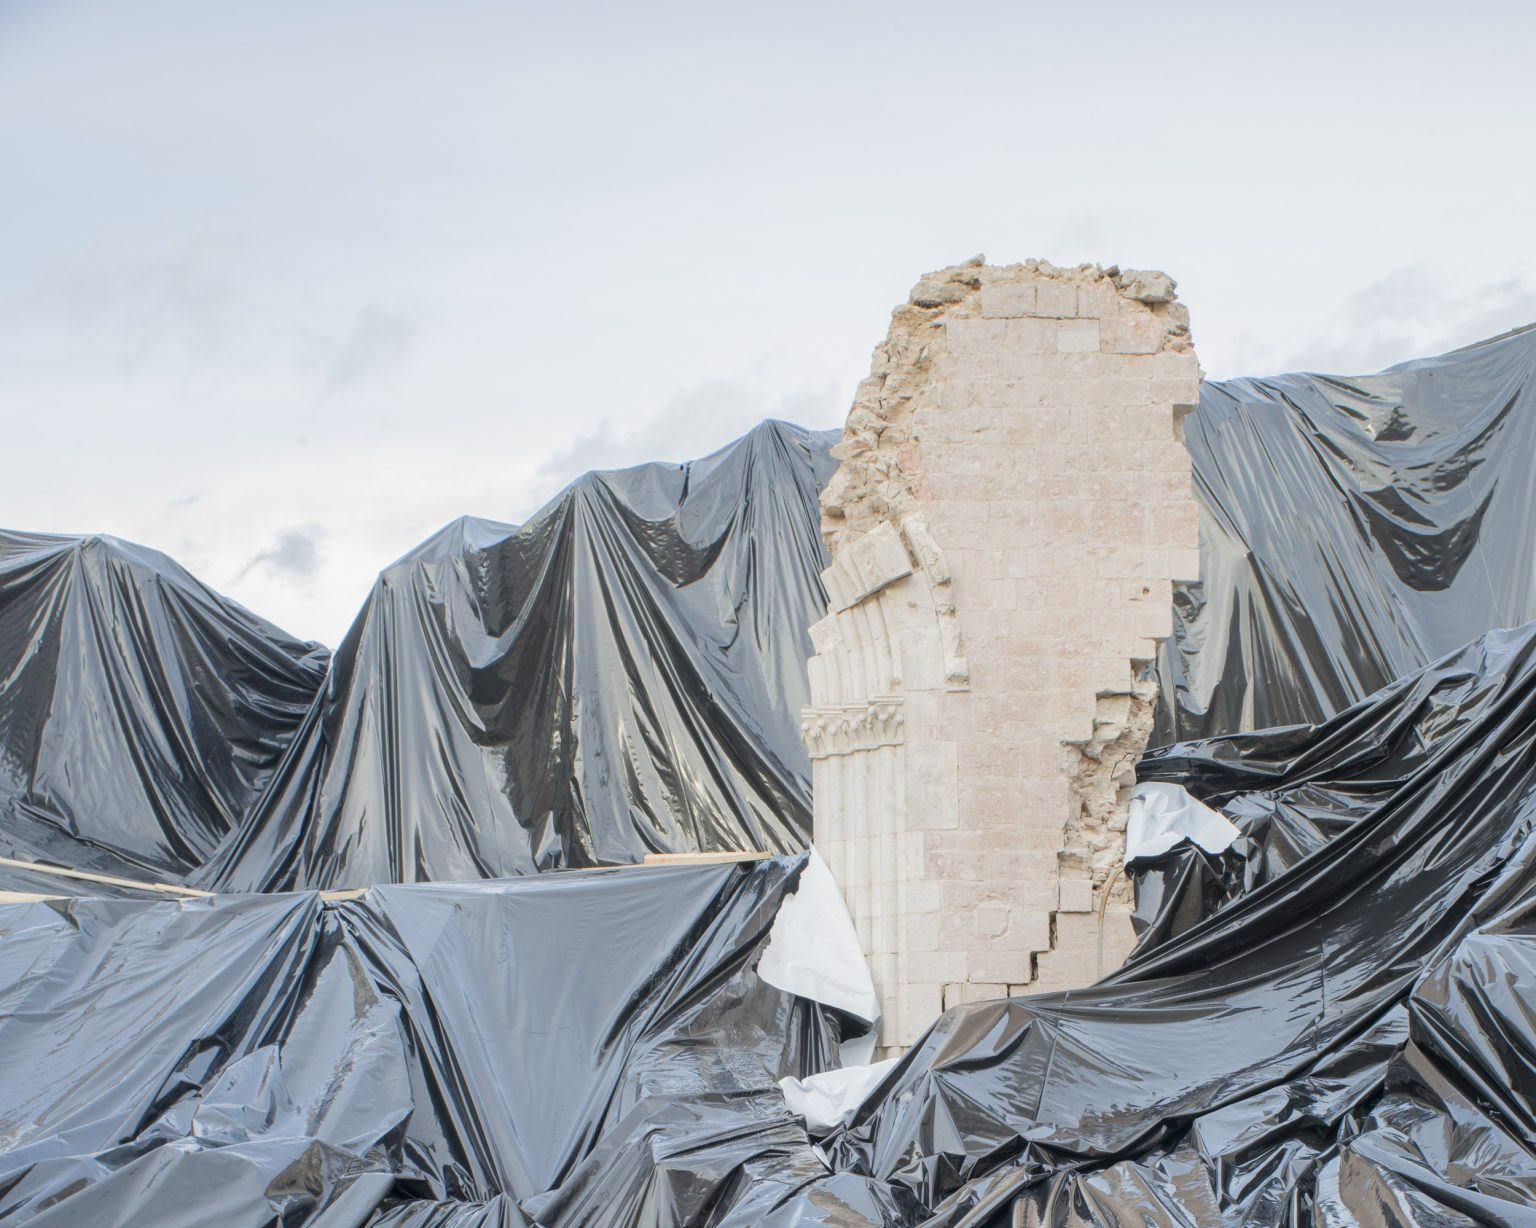 Basilica of San Benedetto, temporary cover placed over the rubble after the collapse of the church caused by the earthquakes of 30 October 2016. Norcia, Perugia, Italy 2016.